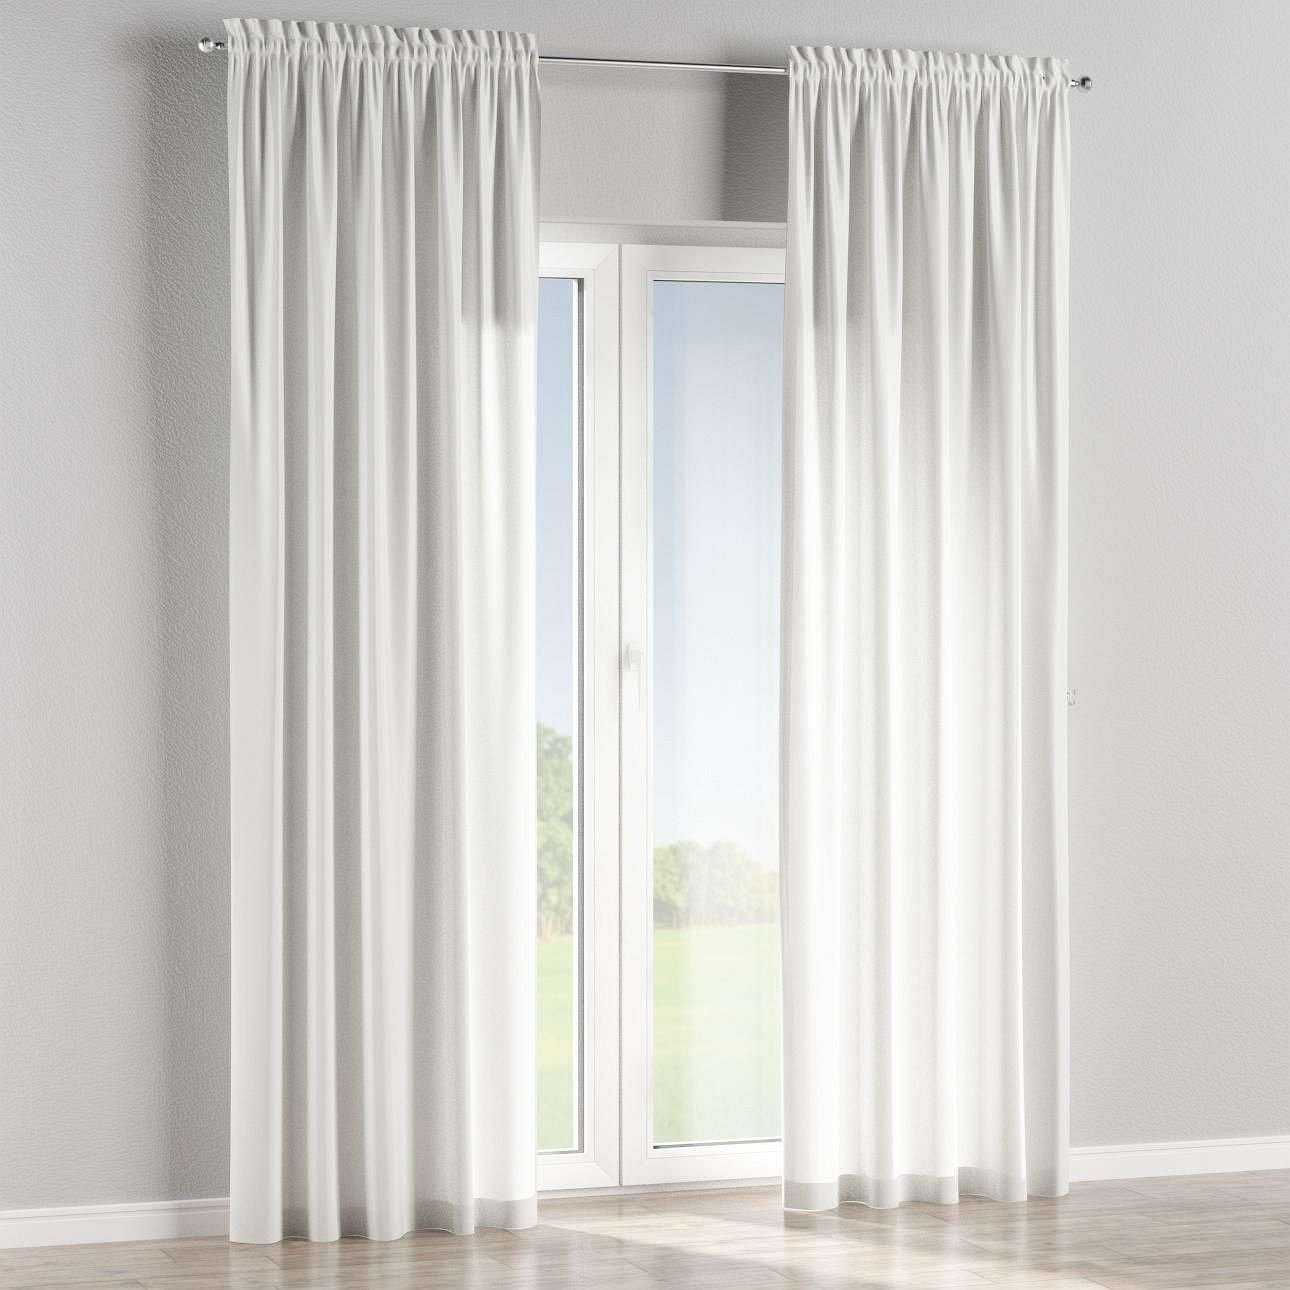 Slot and frill lined curtains in collection Arcana, fabric: 104-02